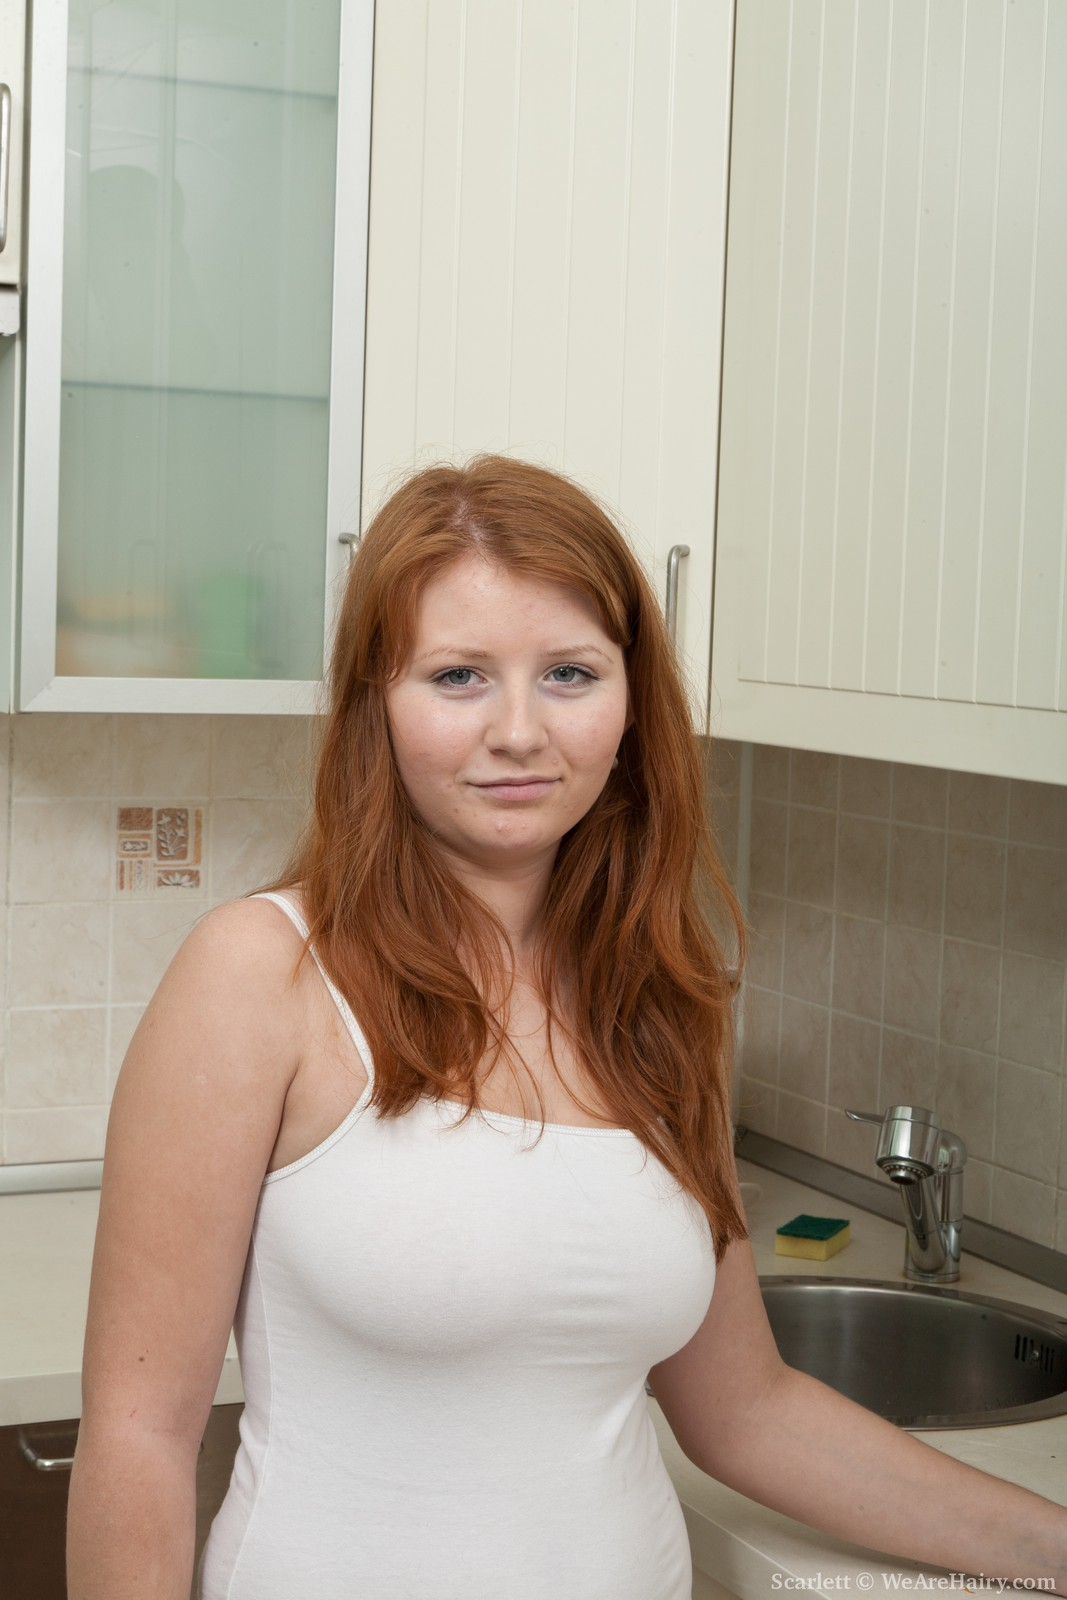 scarlett we are hairy russian redhead nude